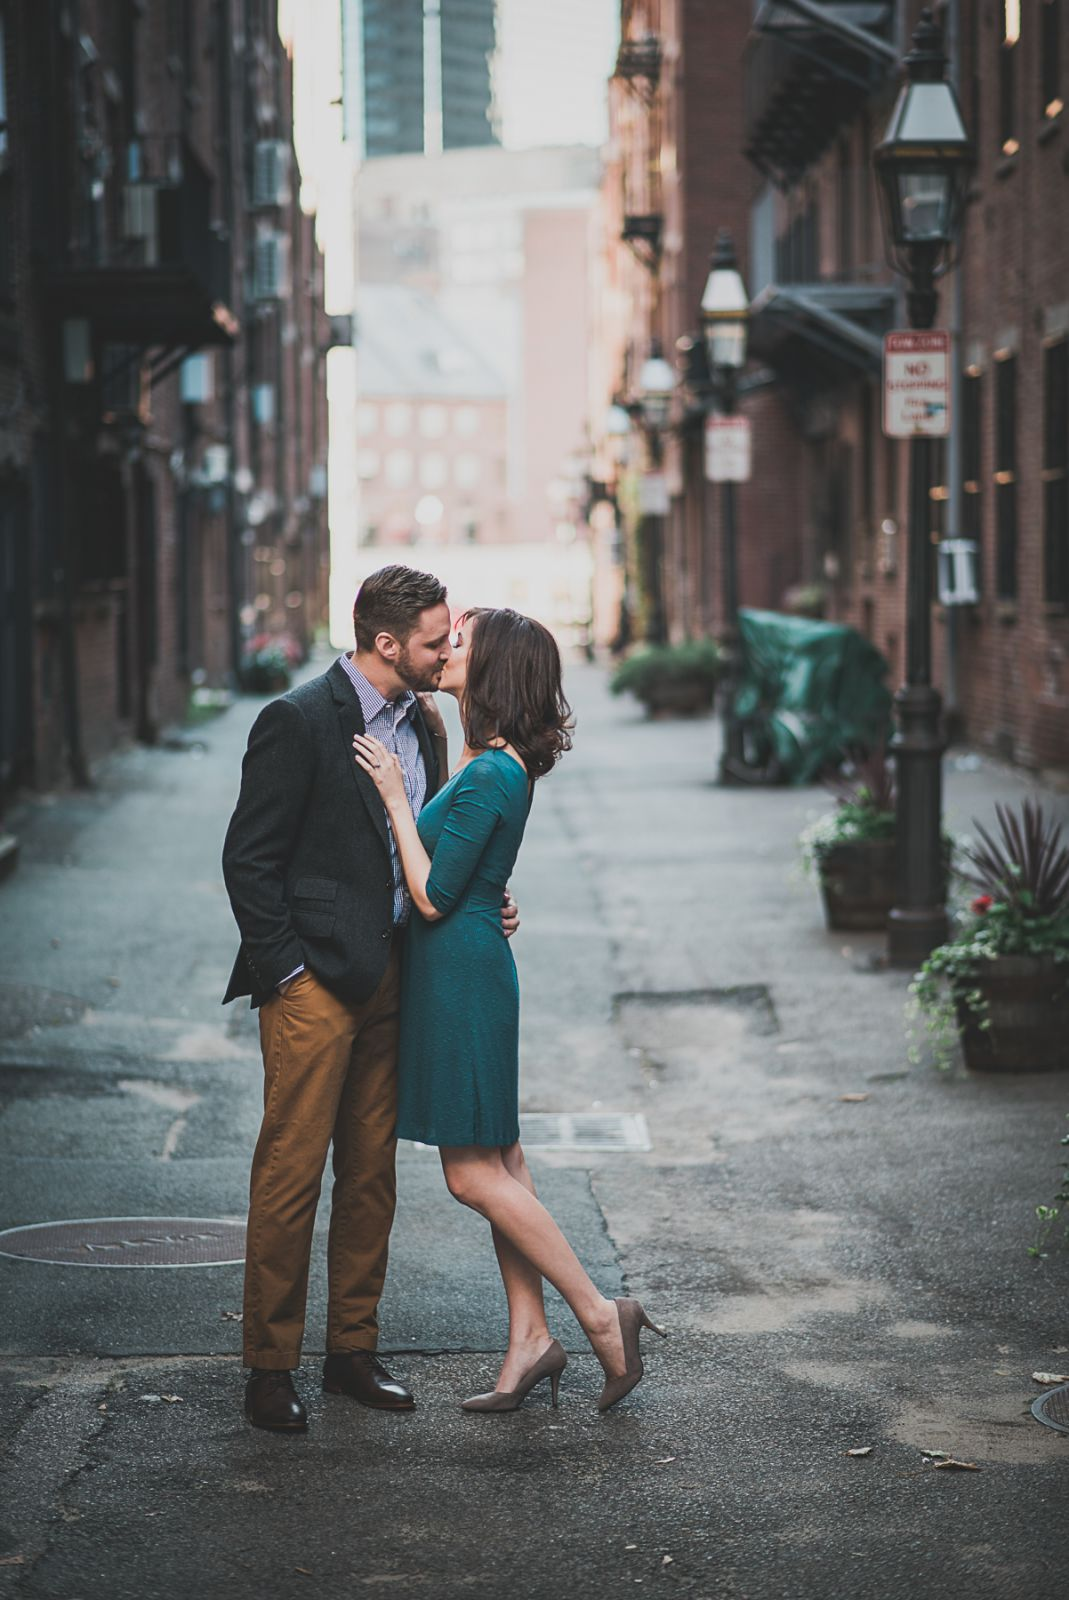 Some engagement photos